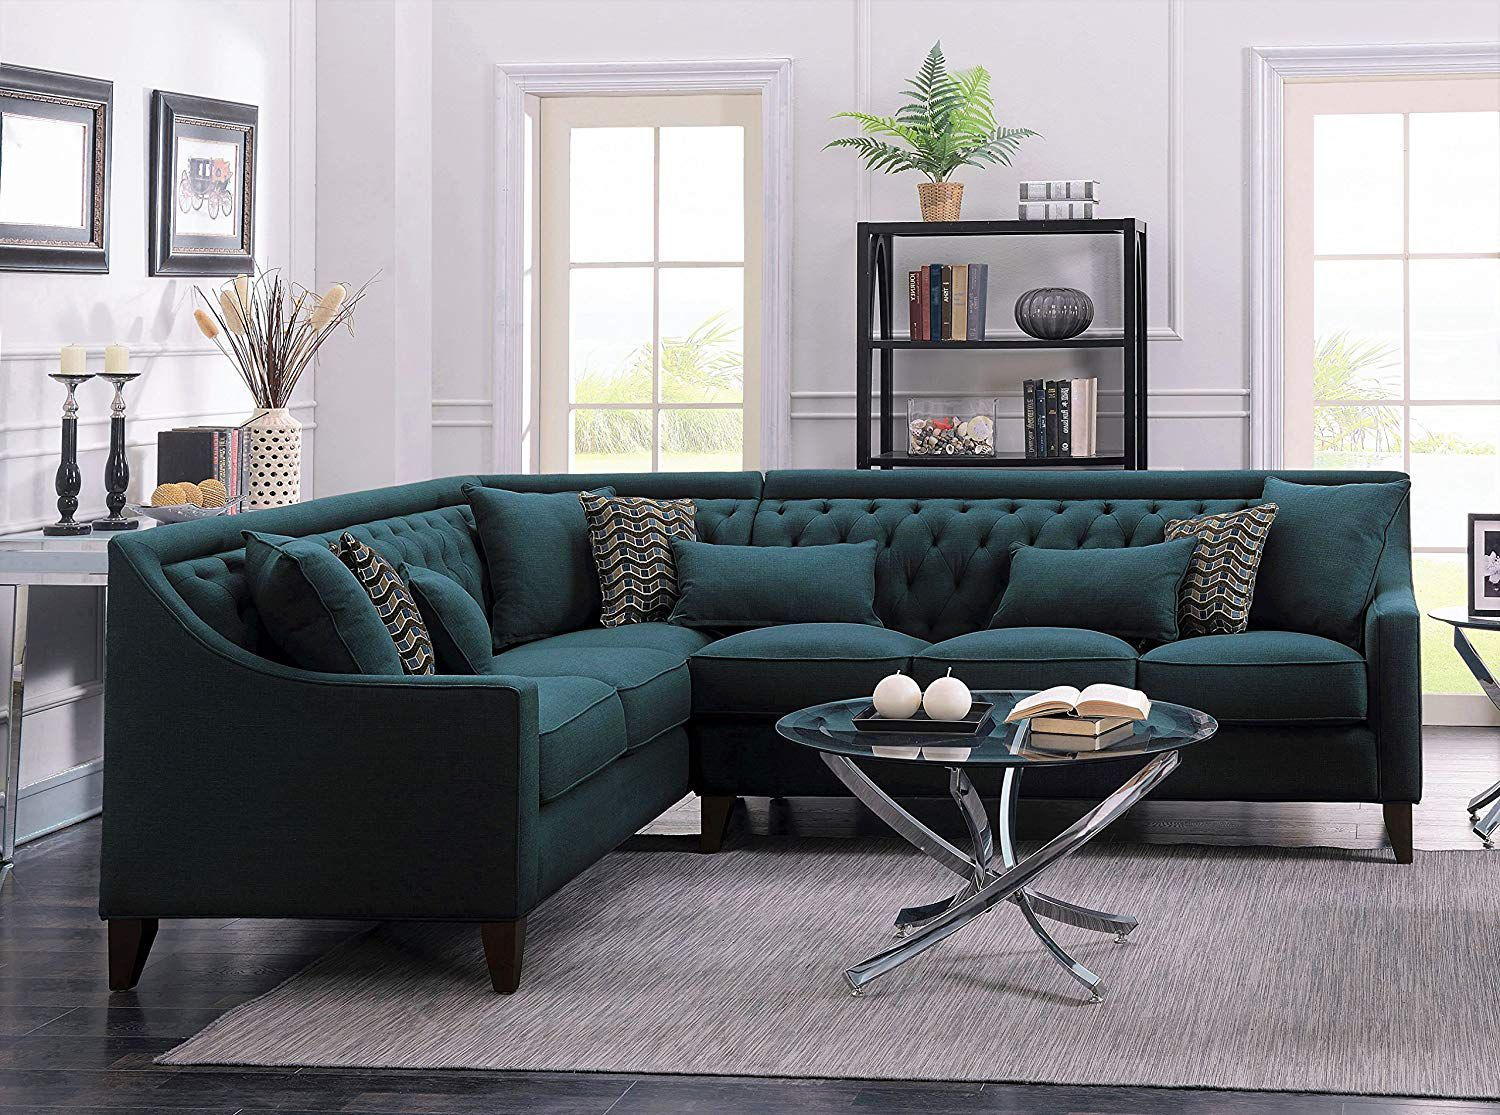 Terrific 15 Best Sectional Sofas For 2019 Stylish Sectional Sofa Pabps2019 Chair Design Images Pabps2019Com